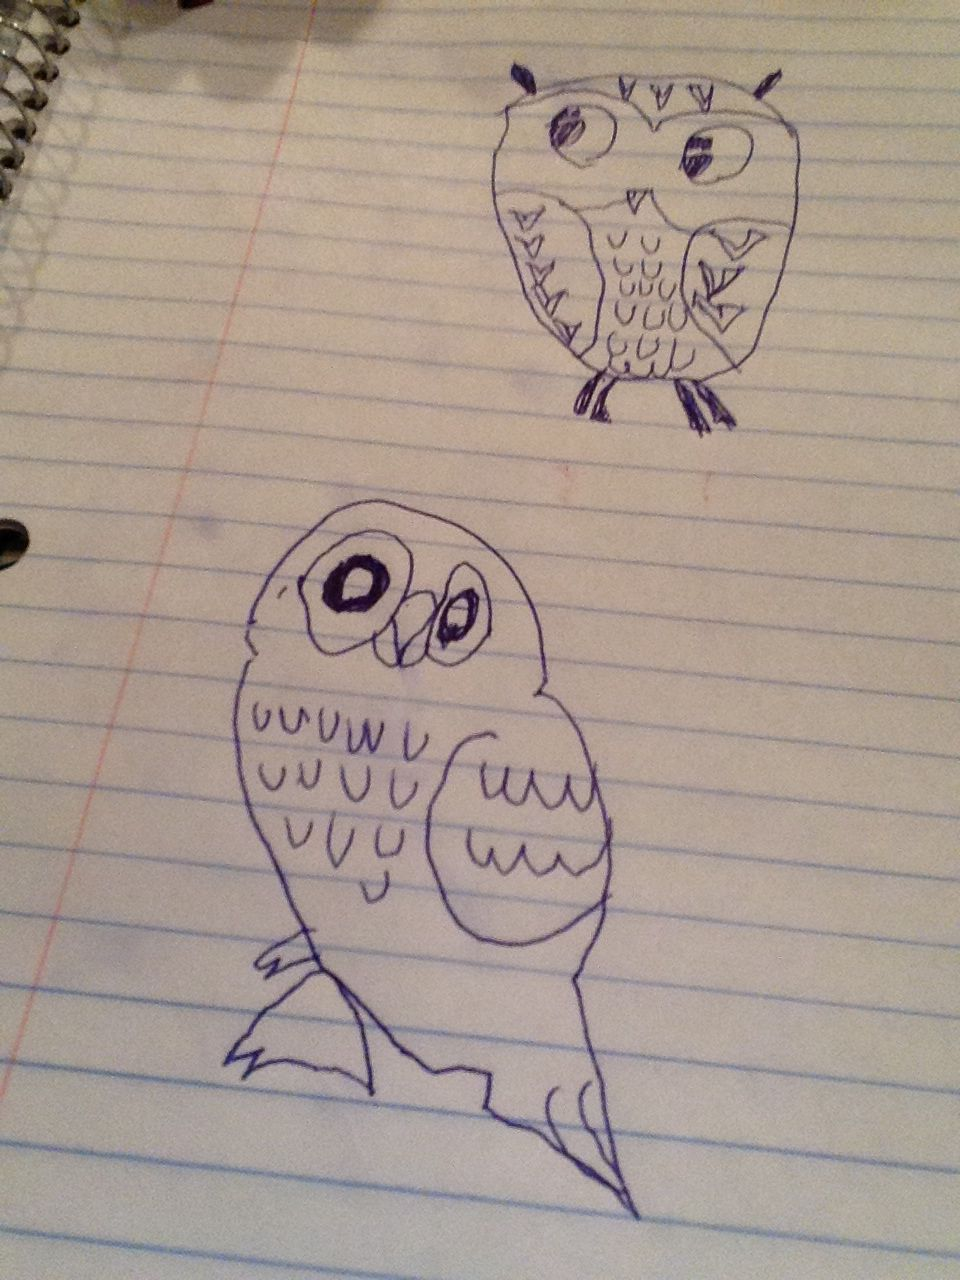 Hi this is my drawing of an owl.